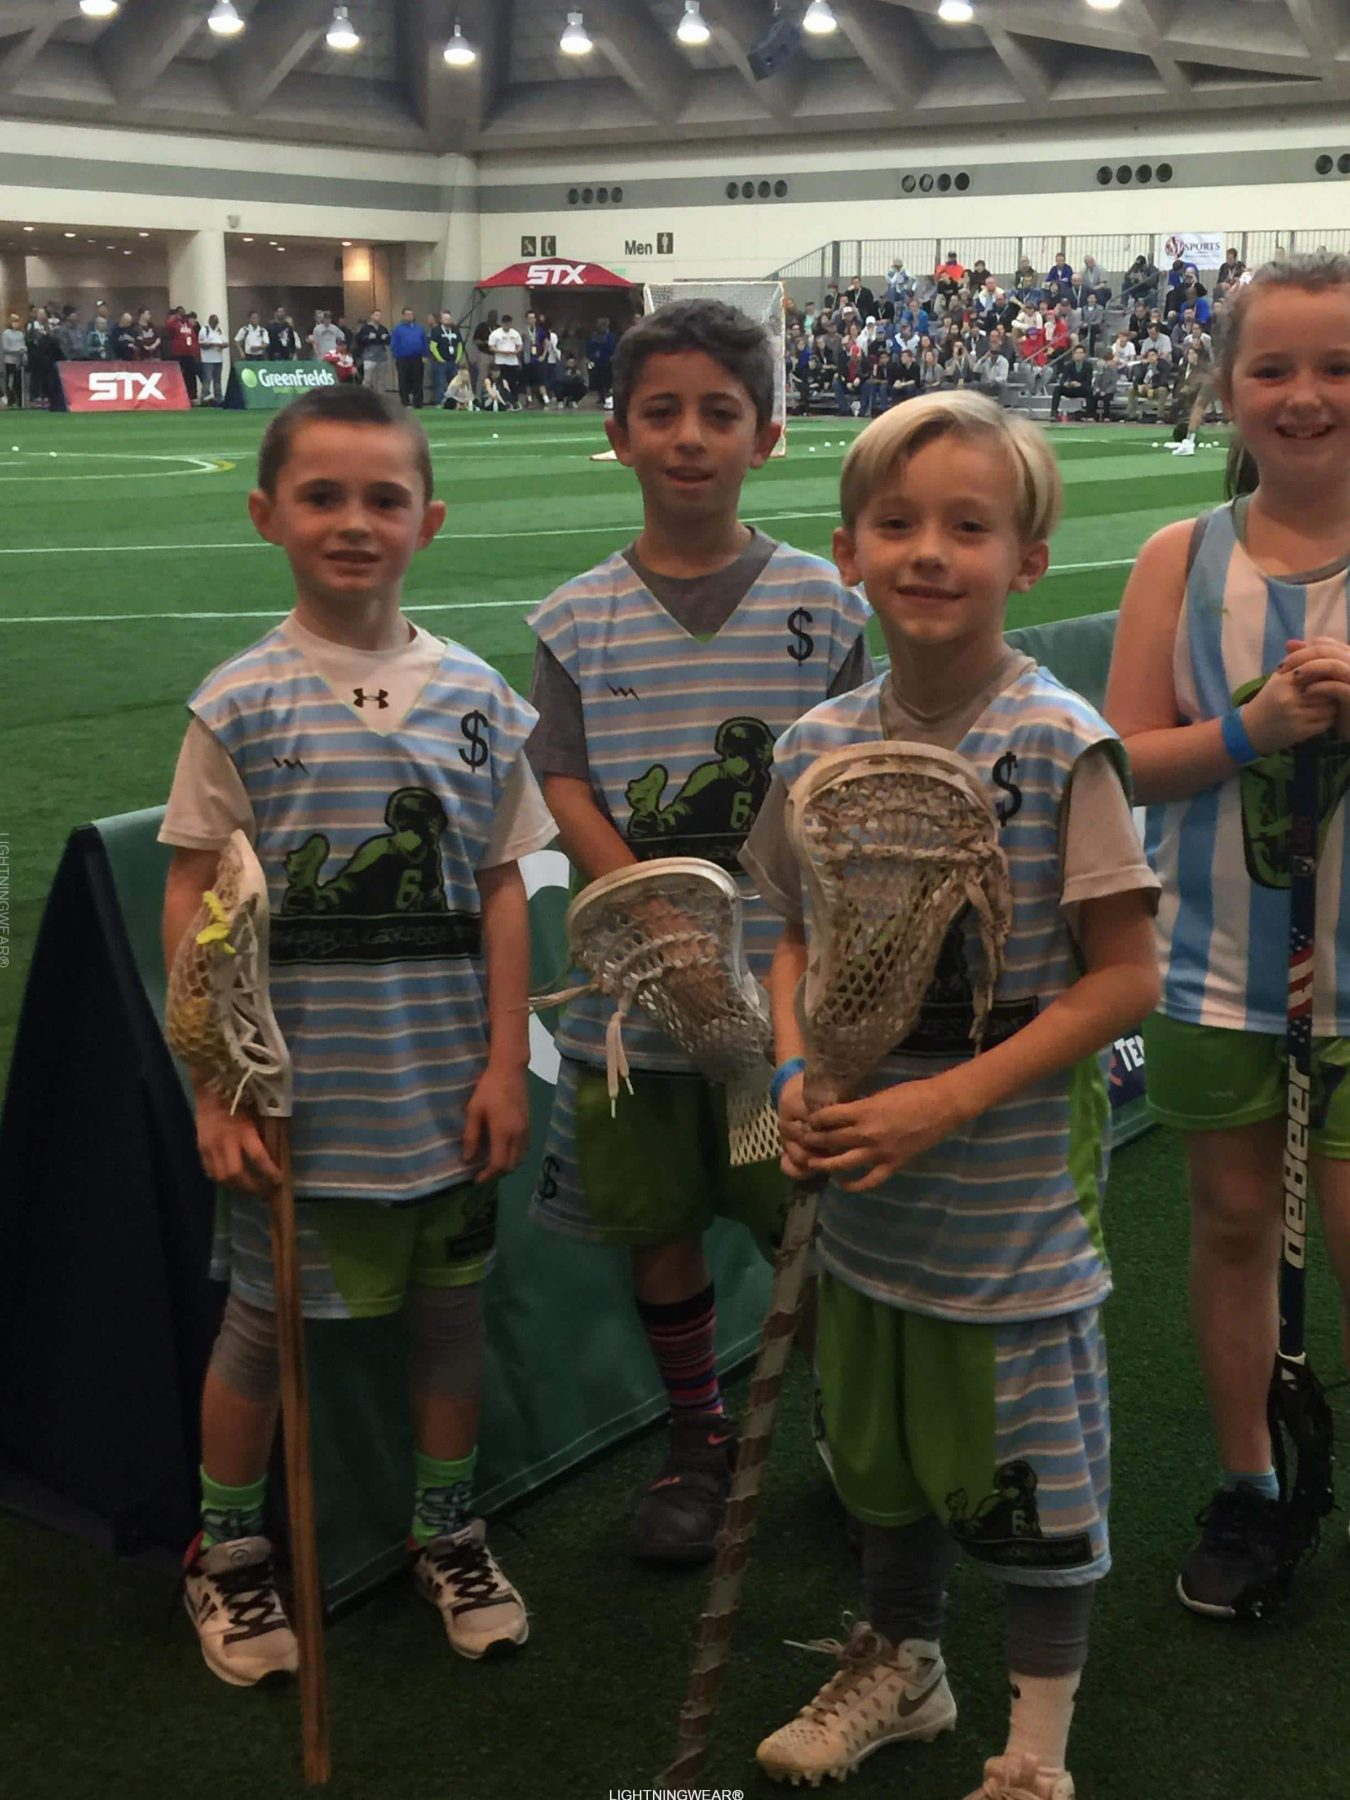 custom youth lacrosse uniforms